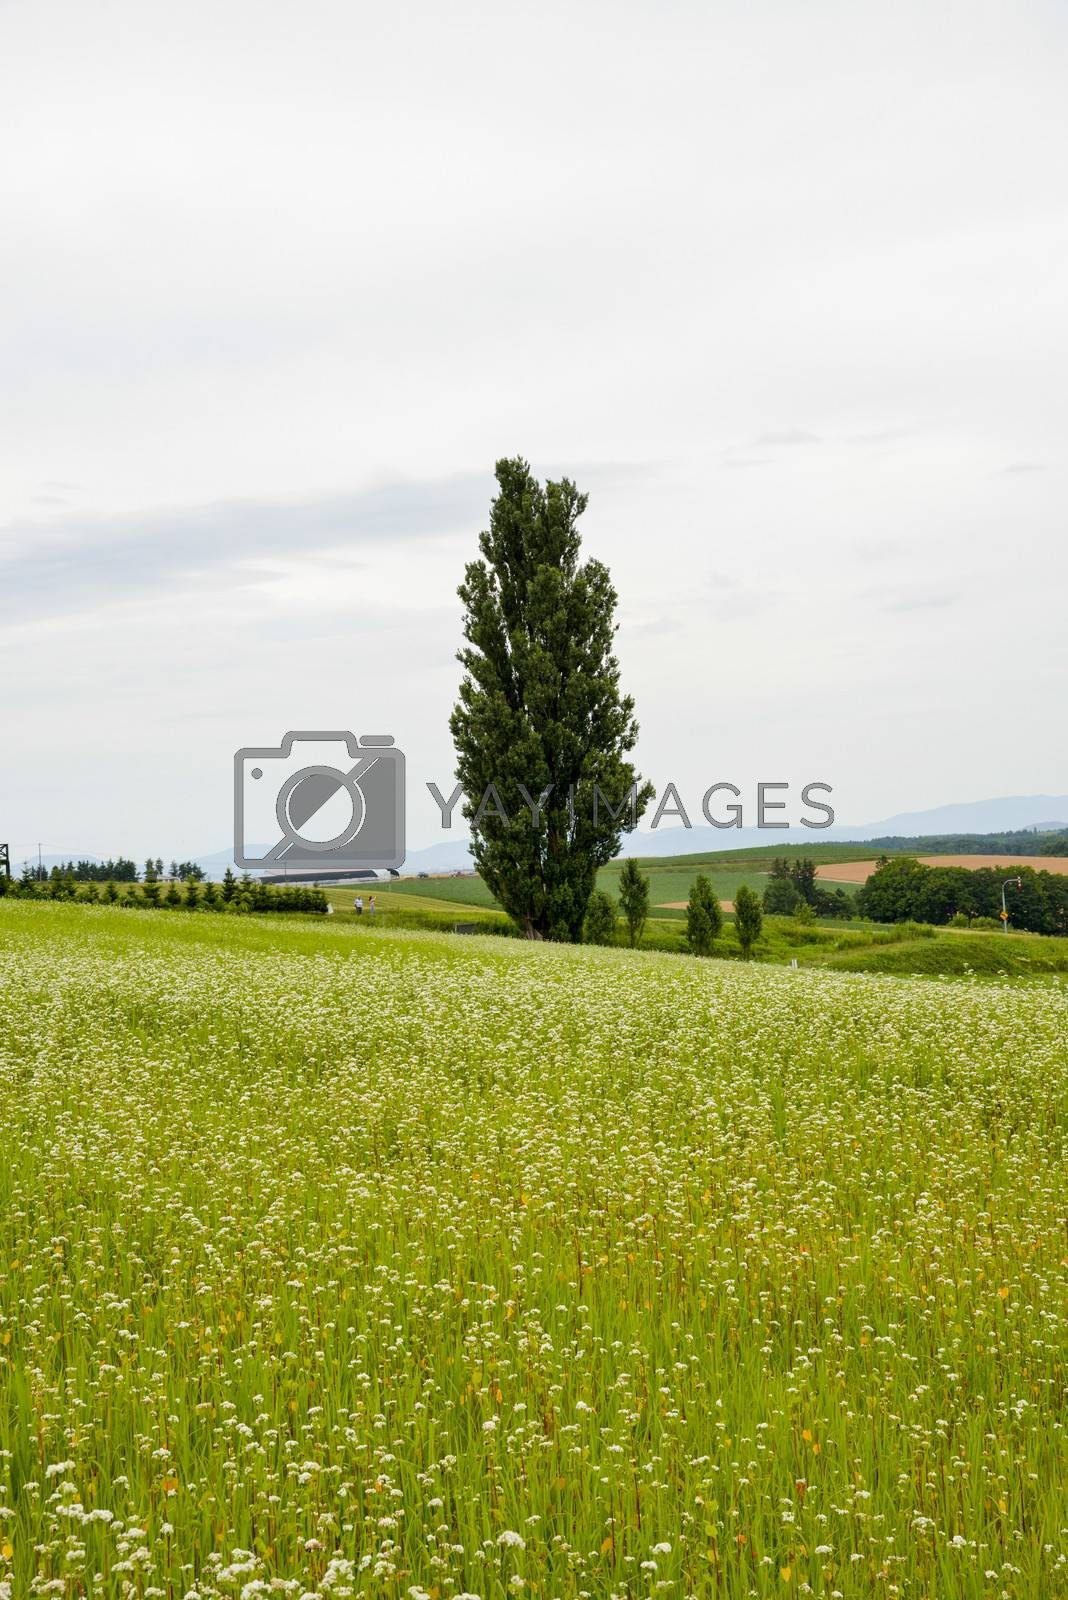 A poplar tree in the field of flower potato9